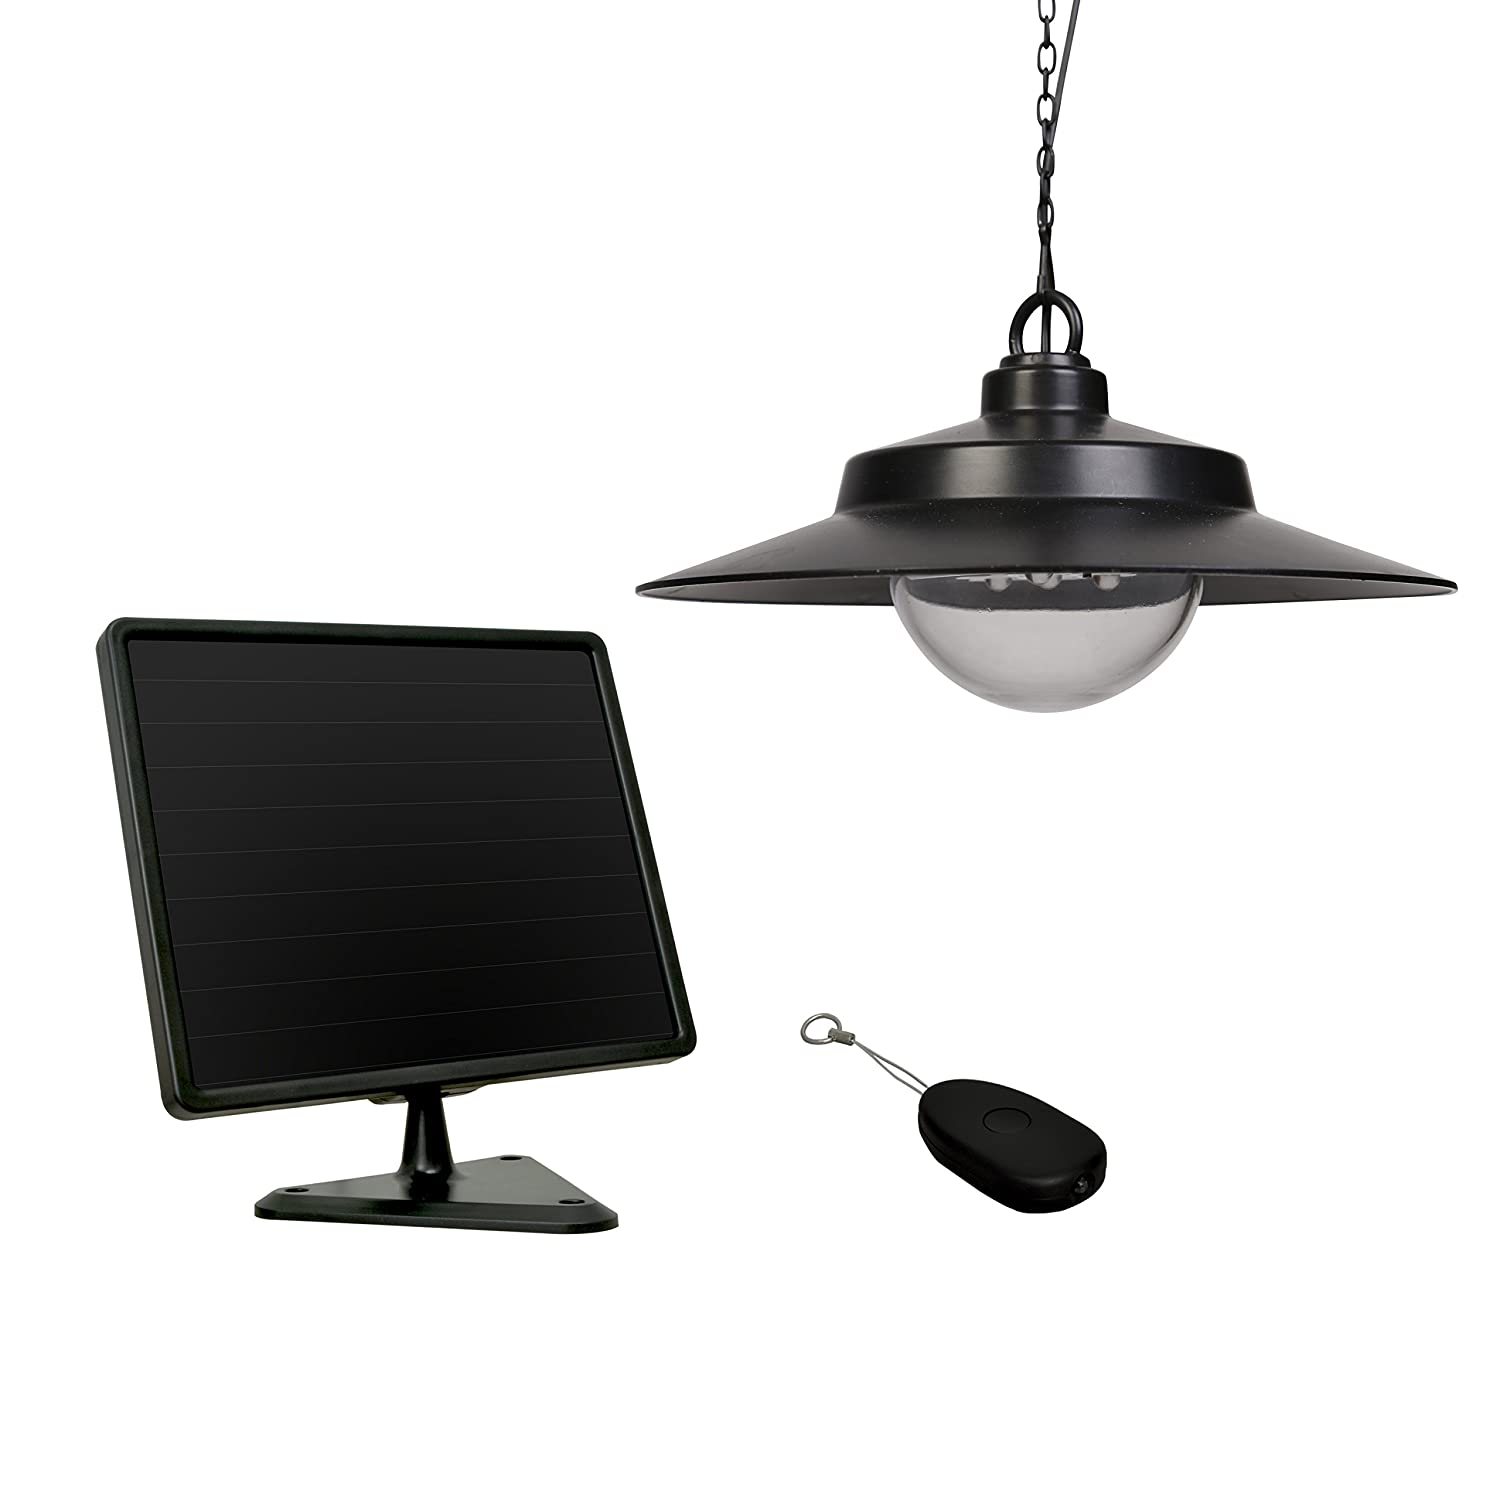 Sunforce 81091 Solar Hanging Light with Remote